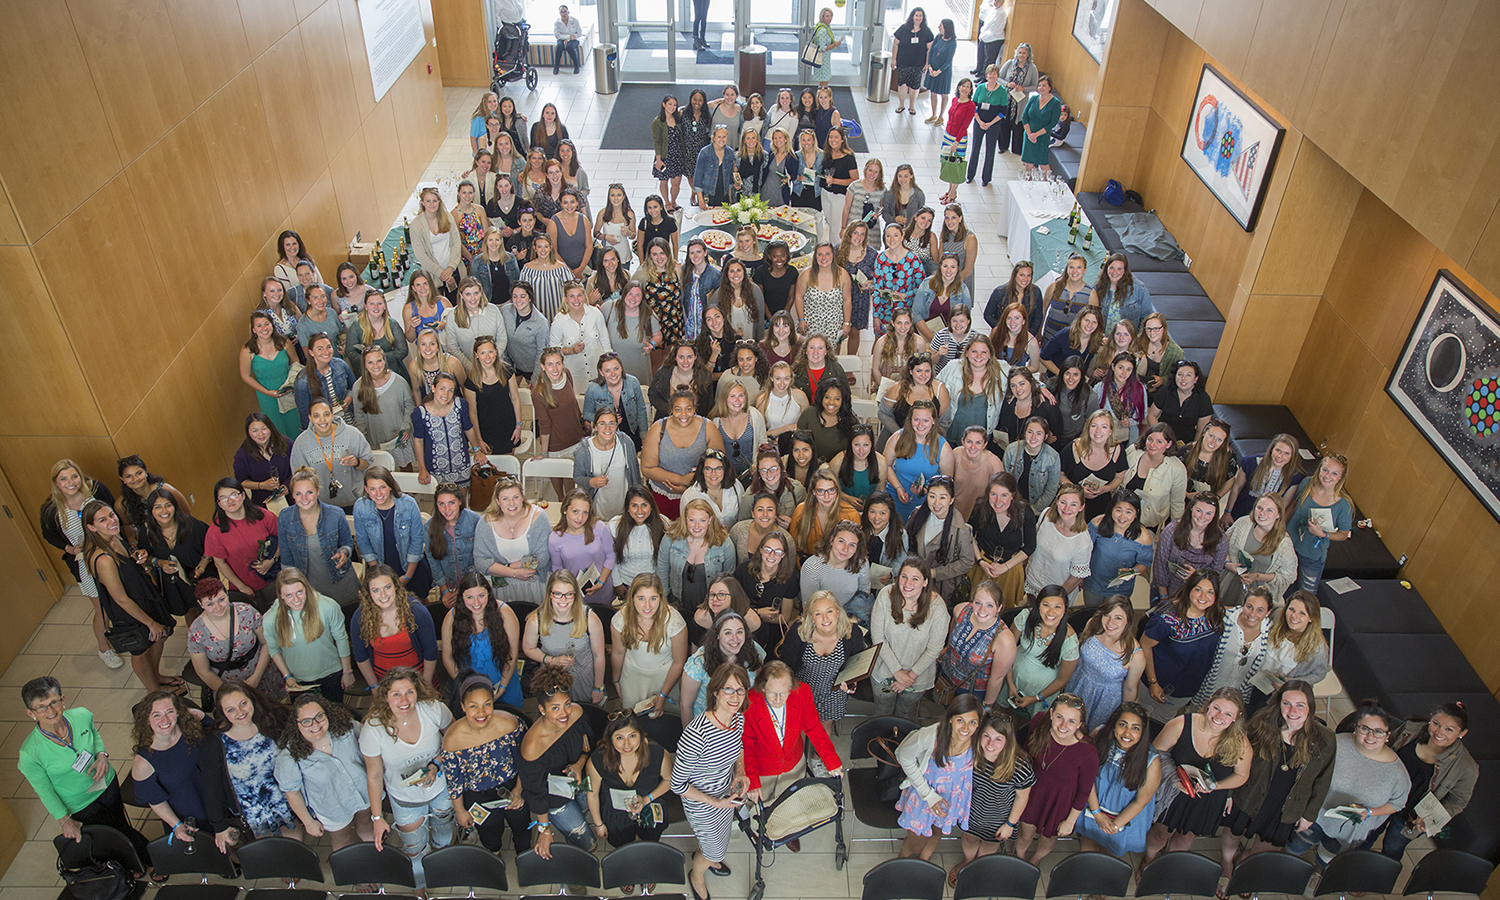 Members of The William Smith Class of 2017 pose for a photo in the lobby of the Gearan Center for the Performing Arts during the annual Senior Welcome Toast.